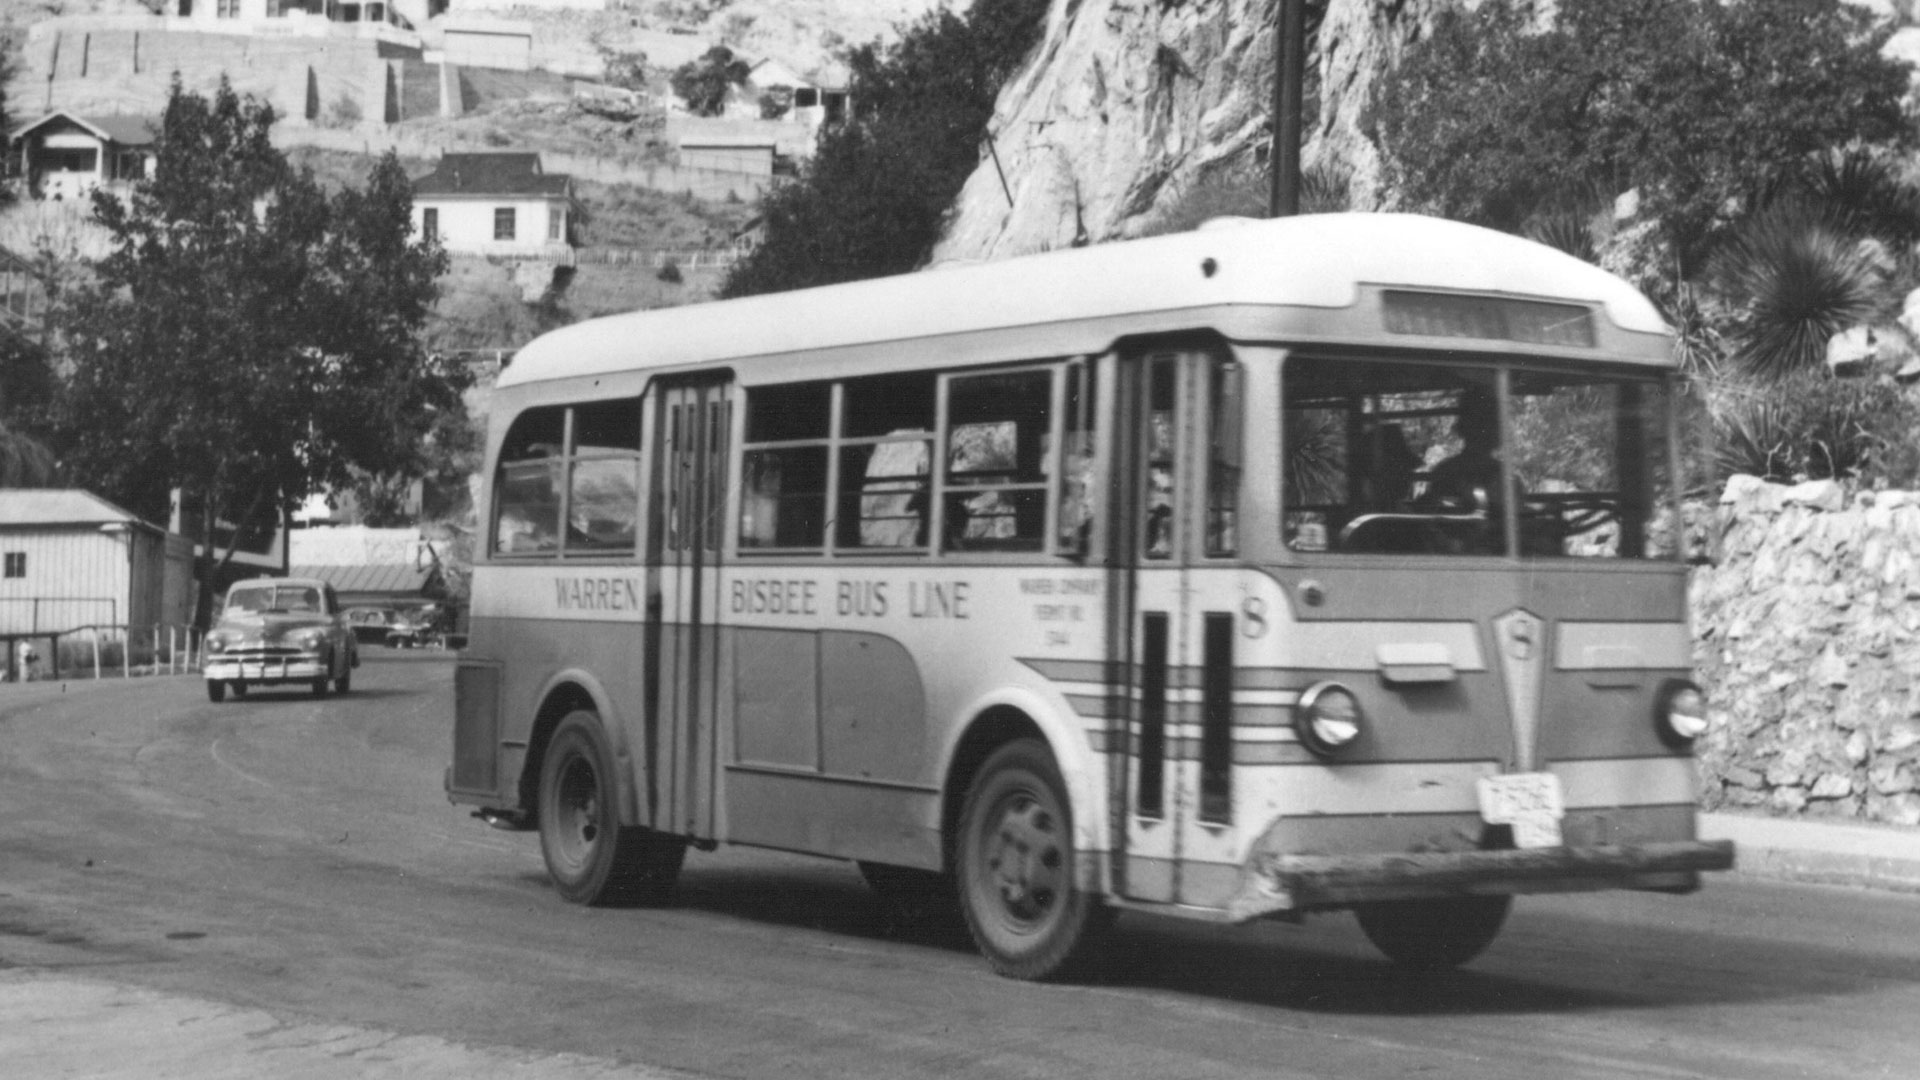 Bisbee bus historic photo